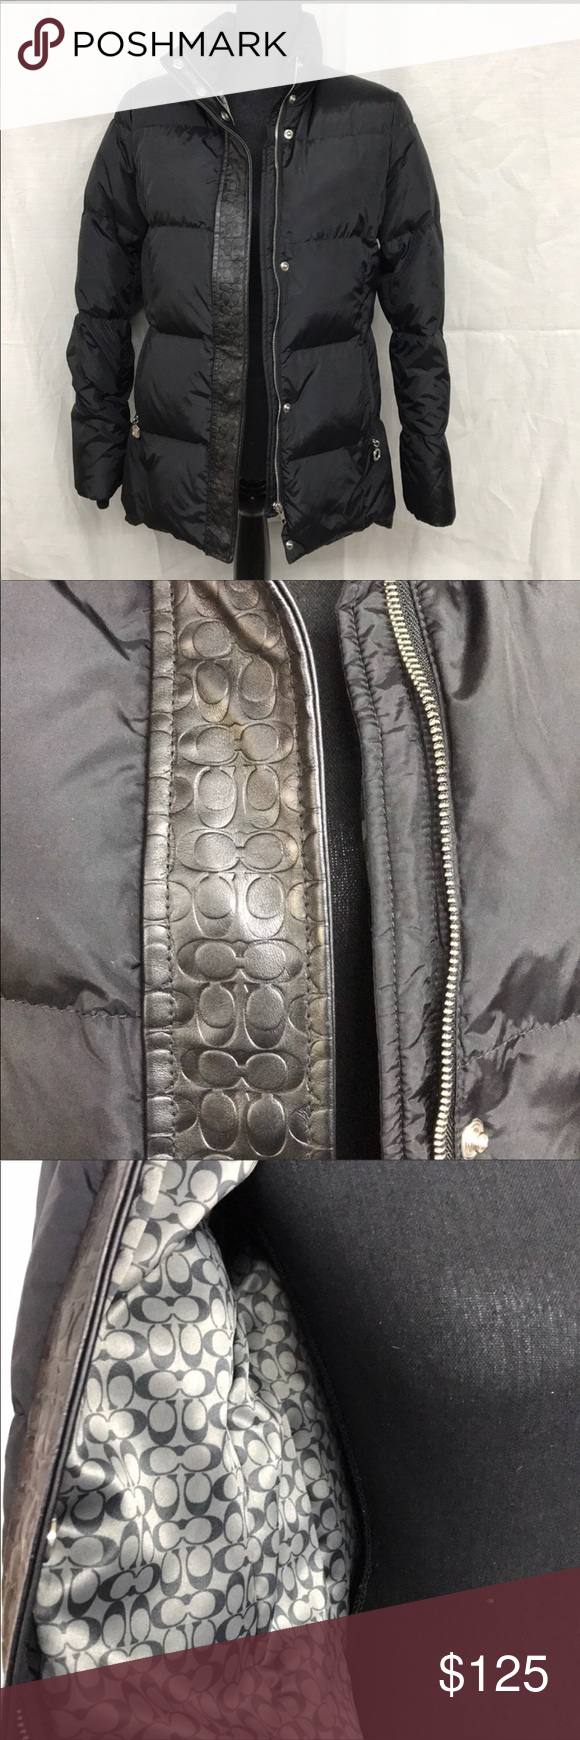 Coach Down Puffer Jacket Size S Excellent Condition Very Warm For The Winter Leather Trim That Covers The Zipper With T Clothes Design Fashion Design Jackets [ 1740 x 580 Pixel ]